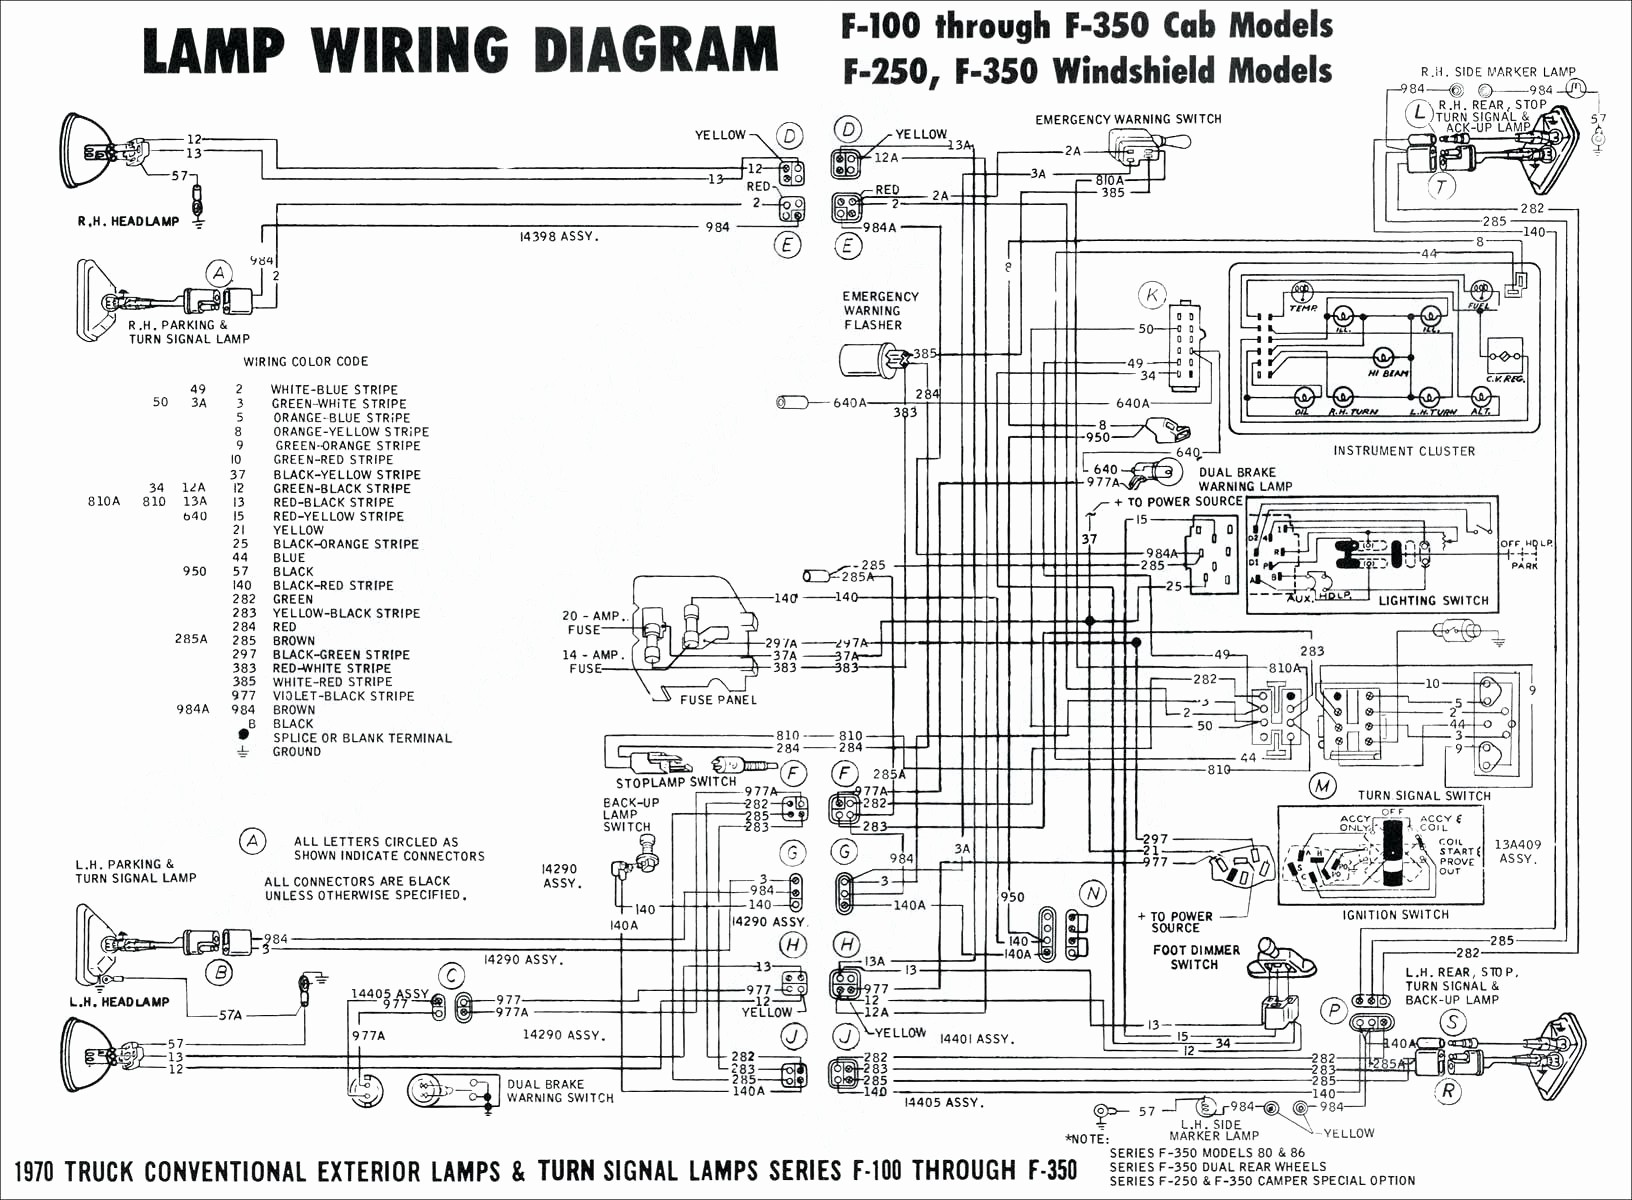 1982 ford f150 fuse diagram wire center u2022 rh 208 167 249 254 1982 ford  f150